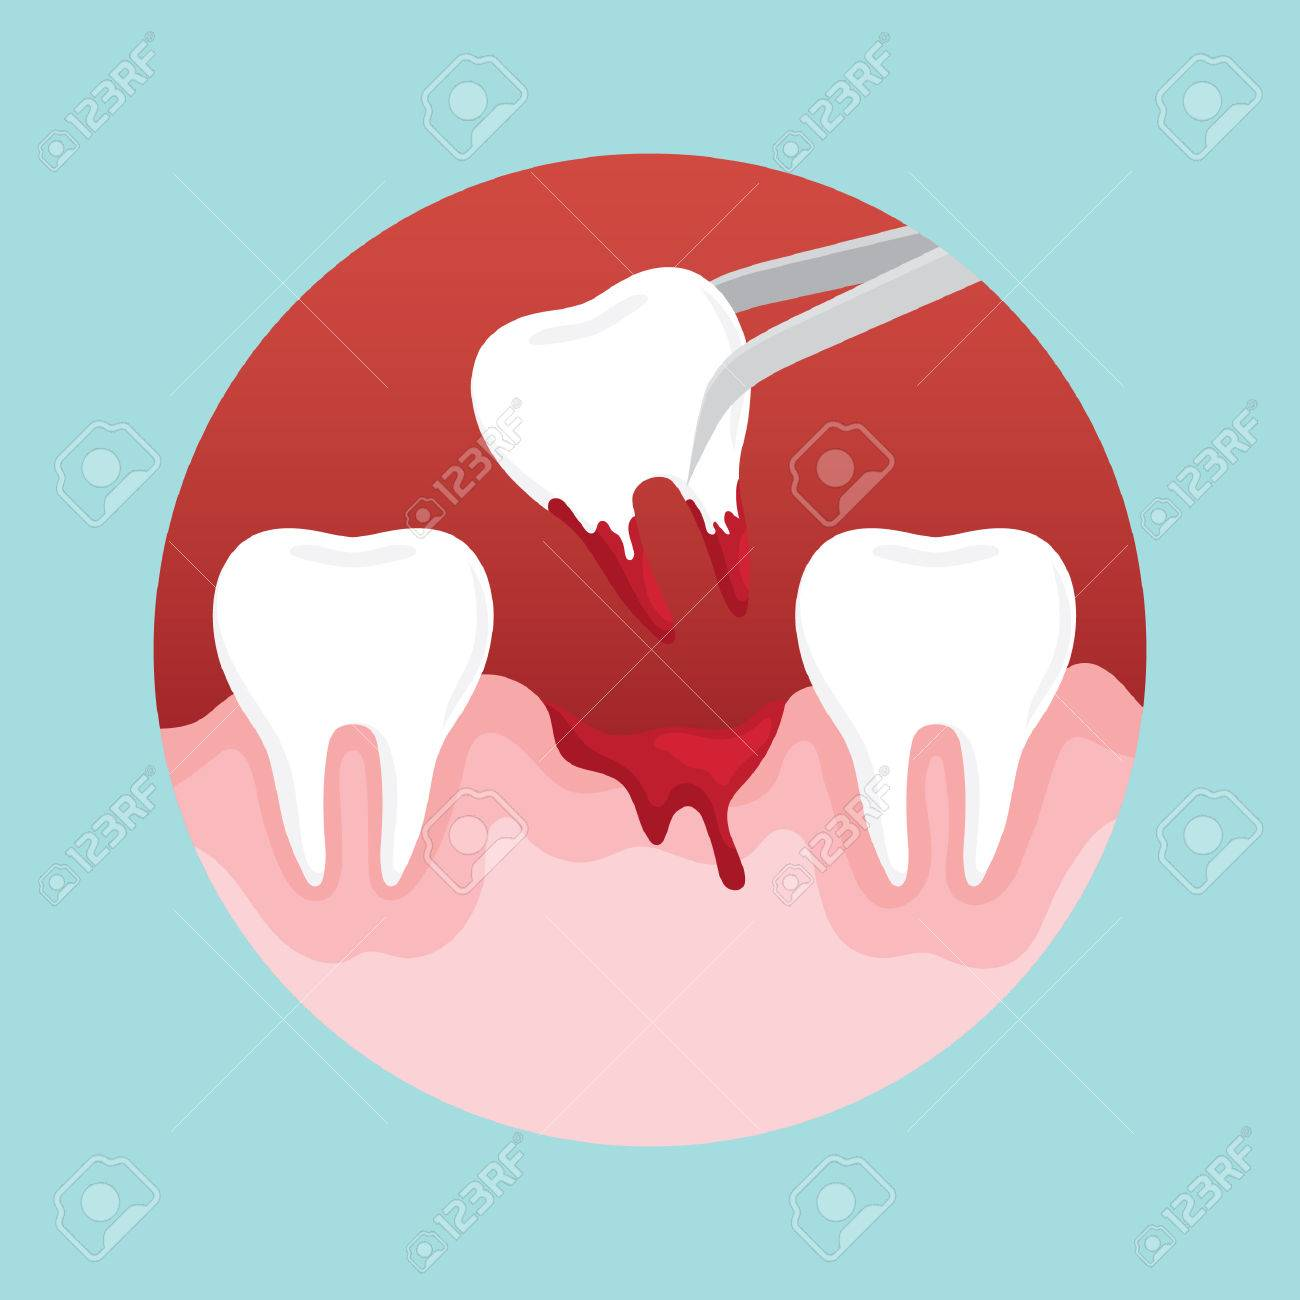 tooth extraction - 53216387